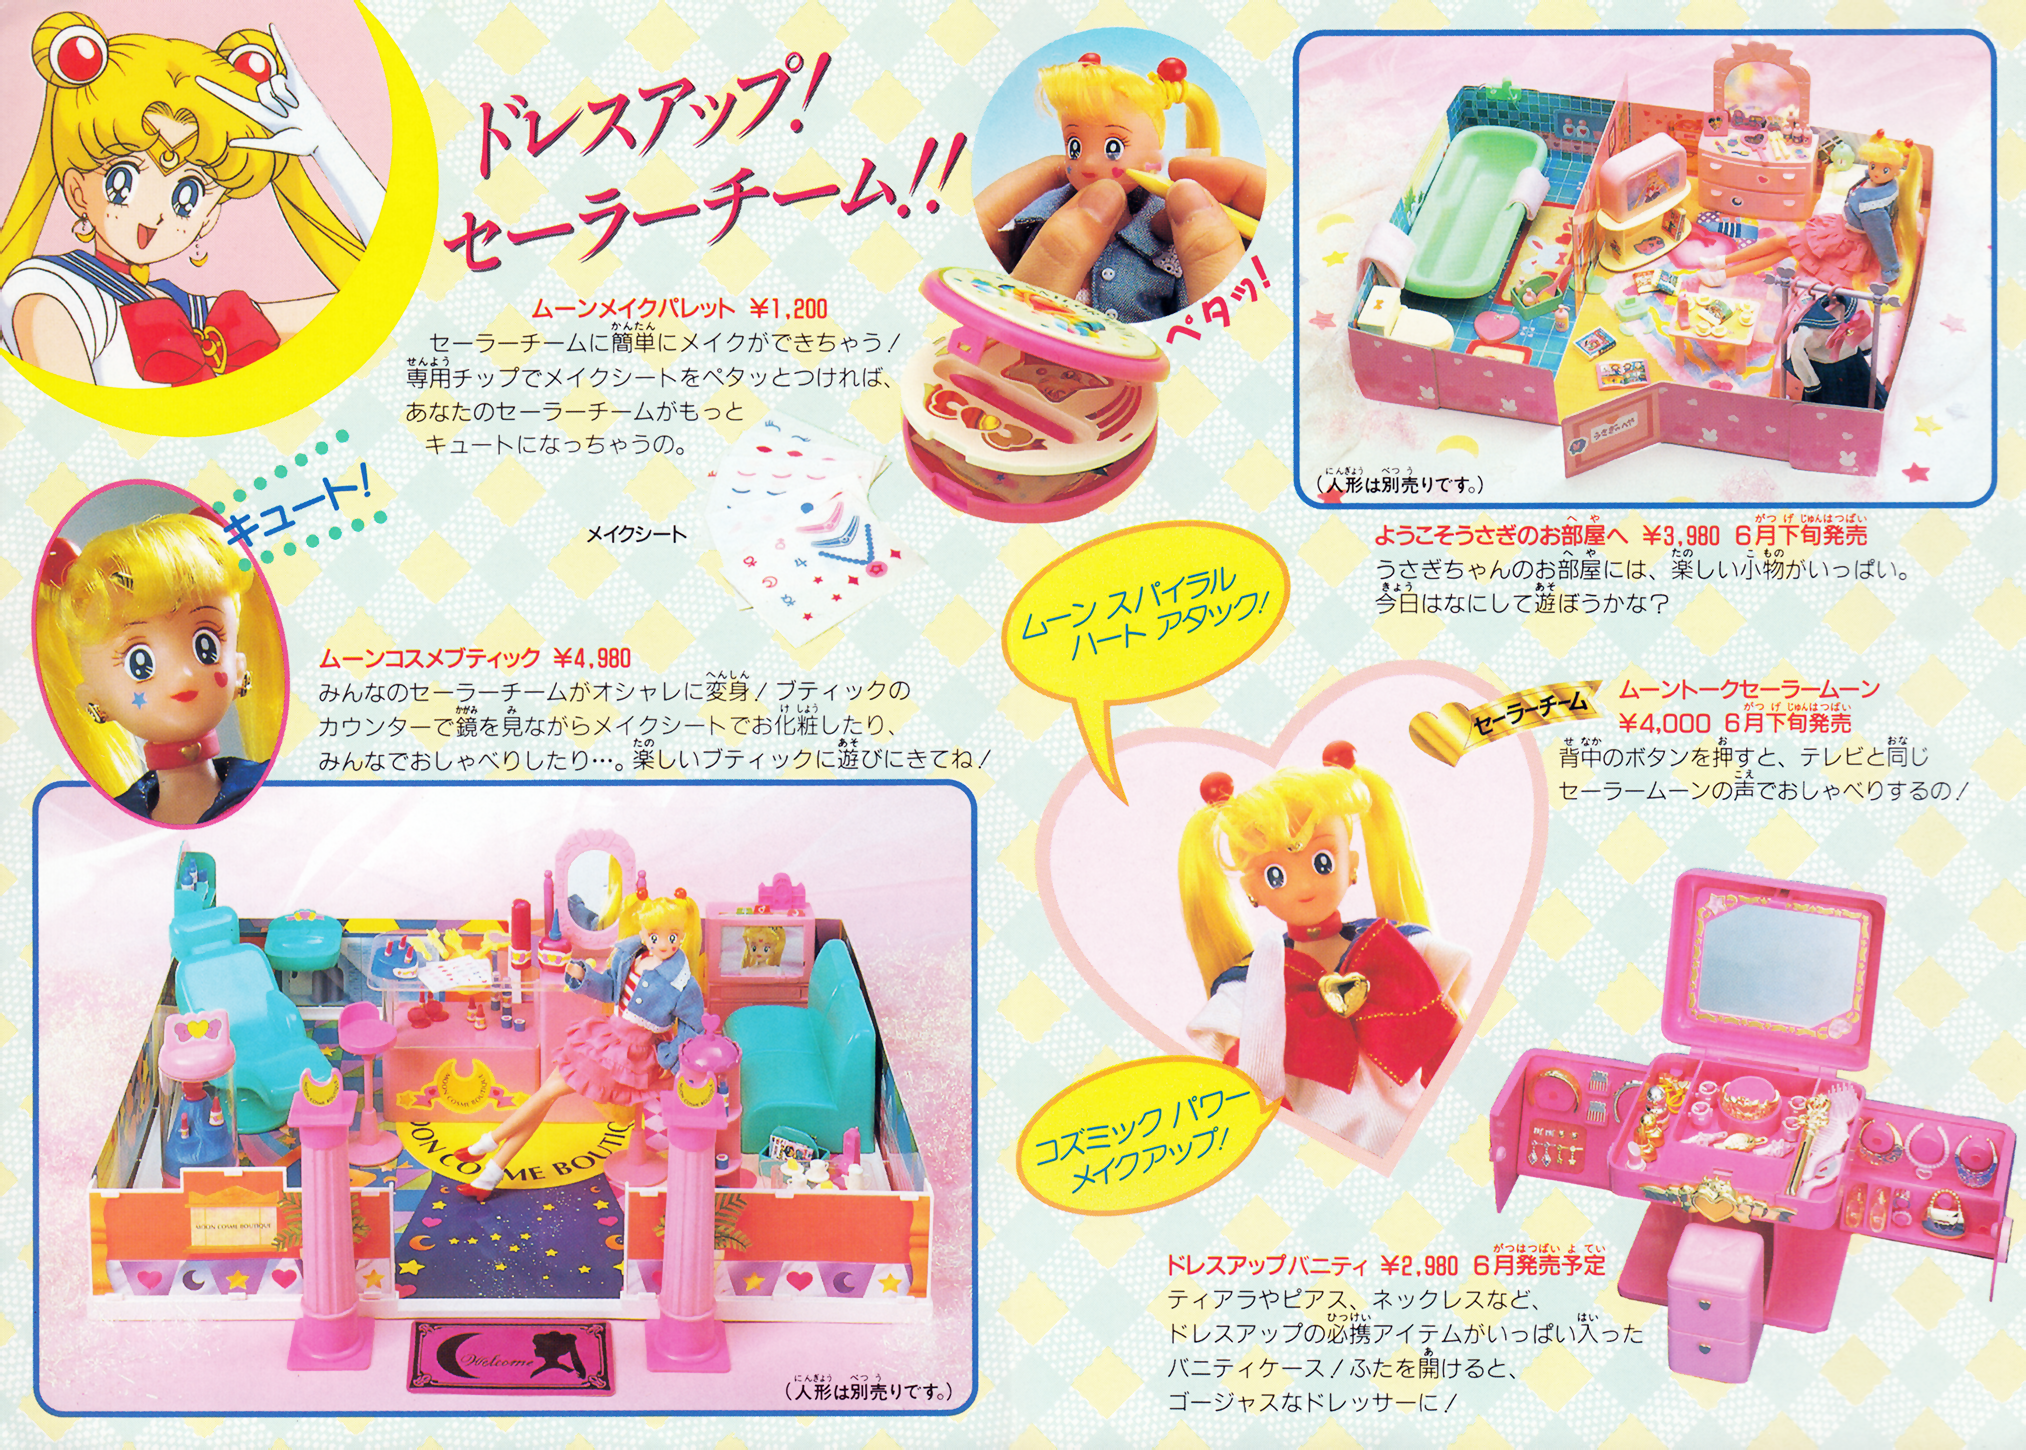 Sailor_moon_s_toy_pamphlet_05